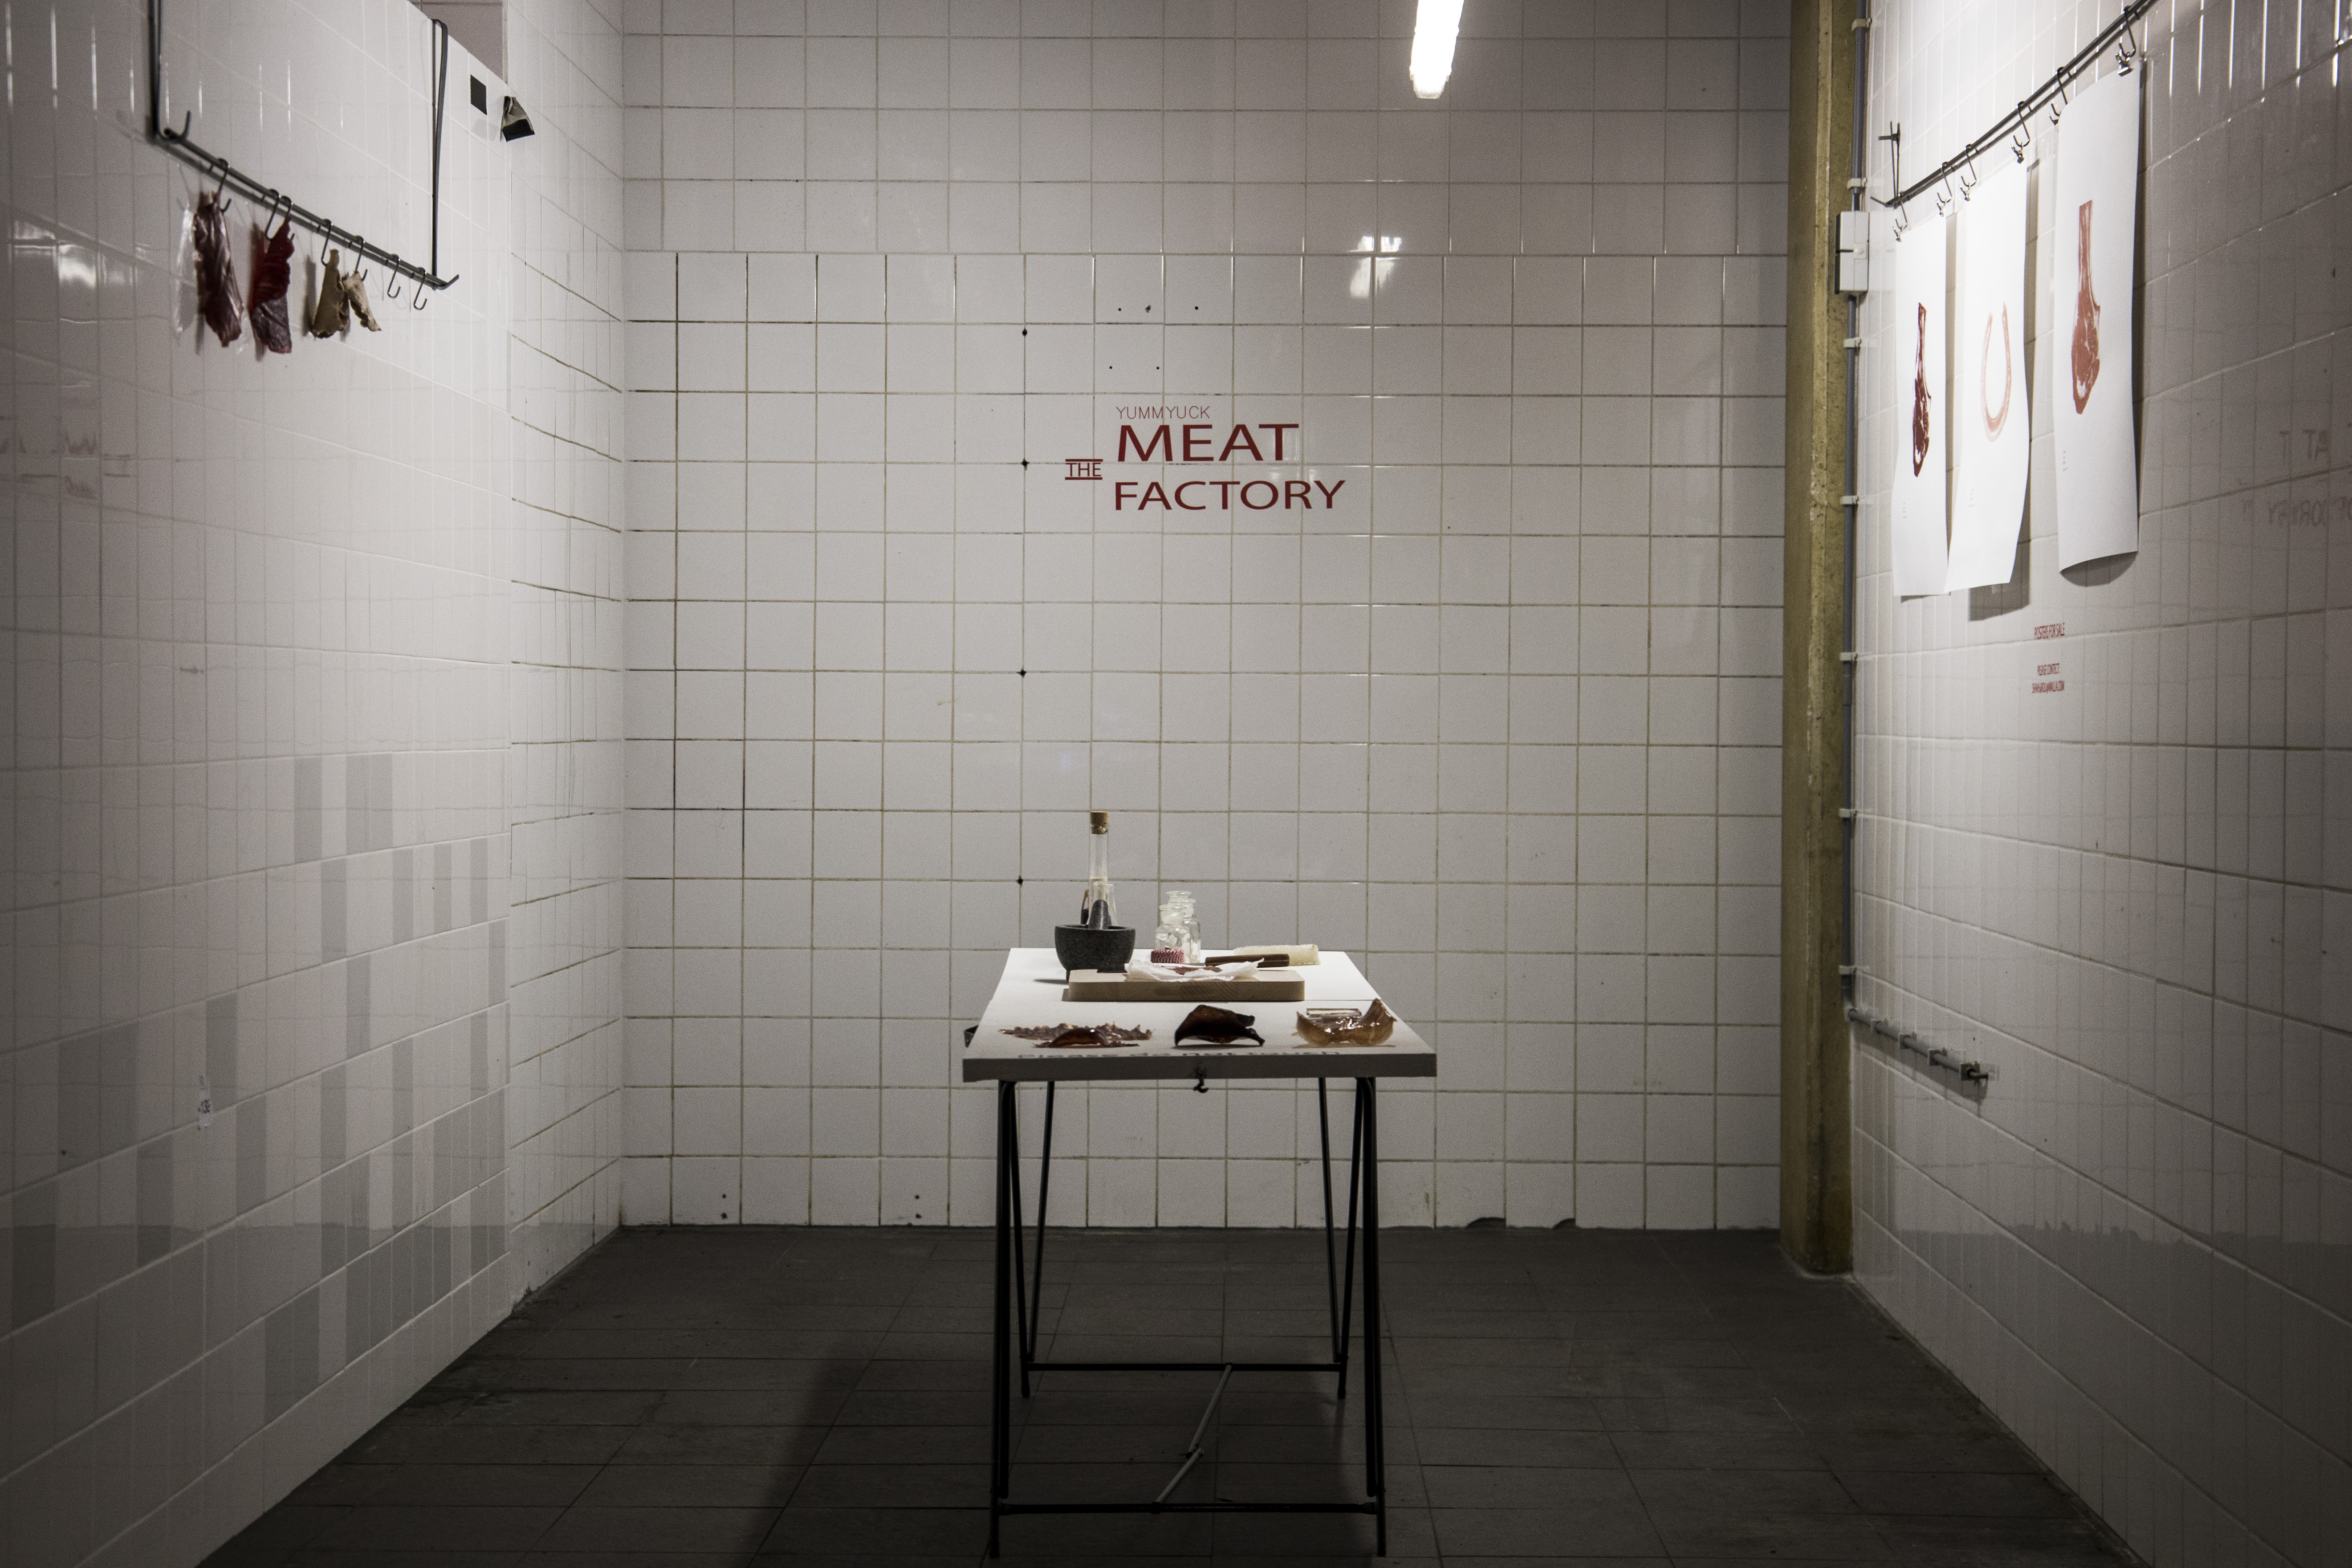 The Meat Factory